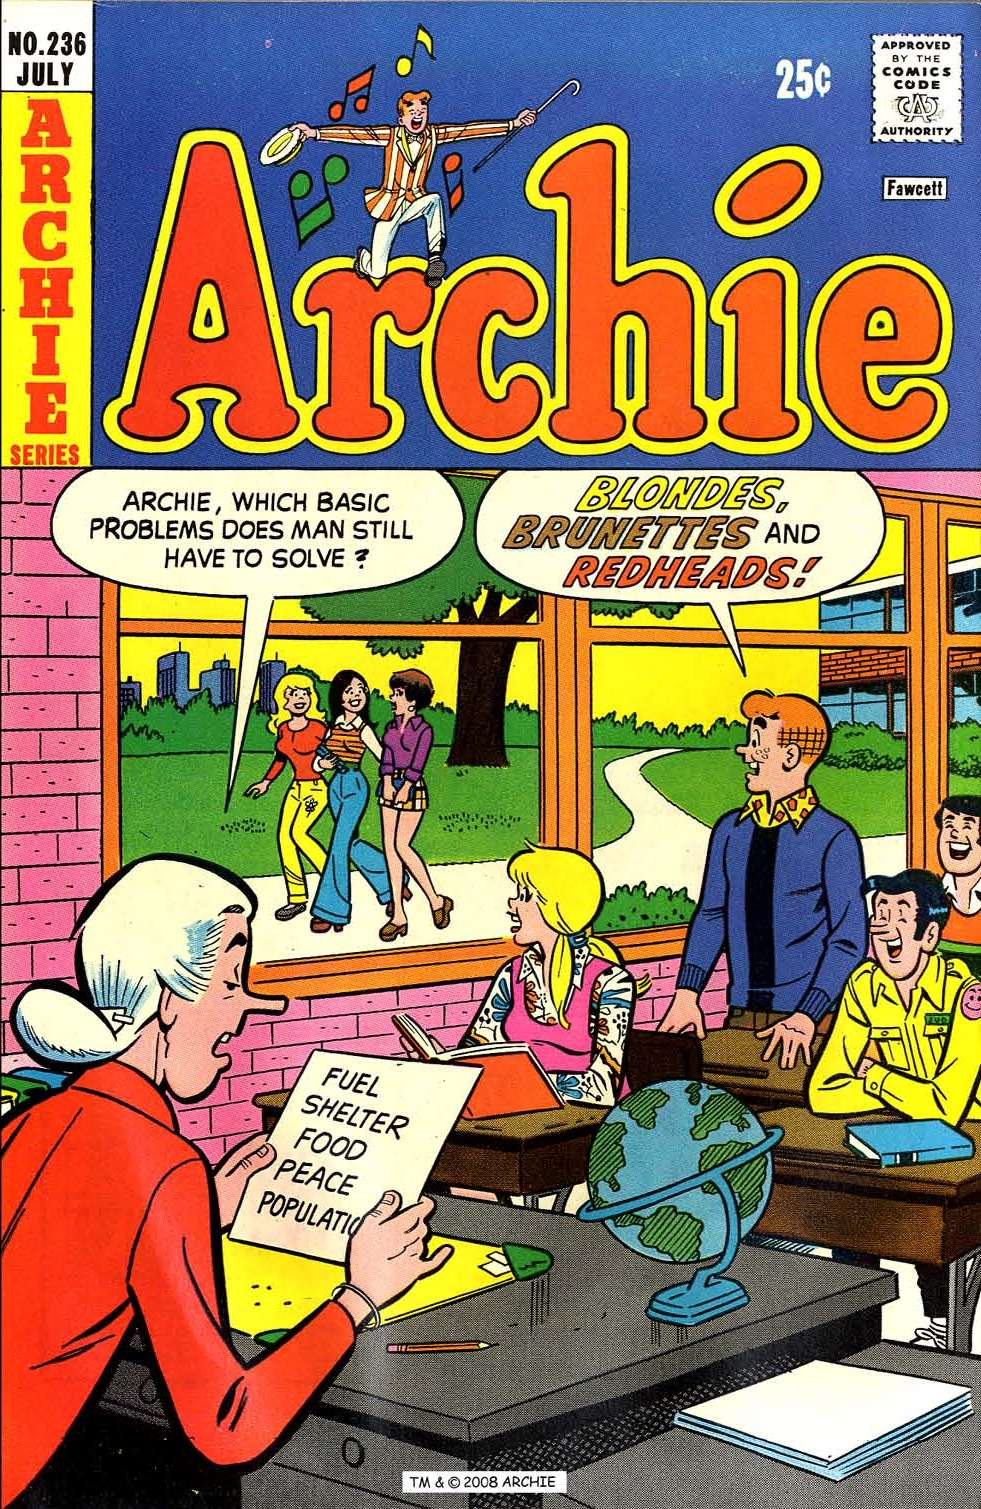 Read online Archie (1960) comic -  Issue #236 - 1